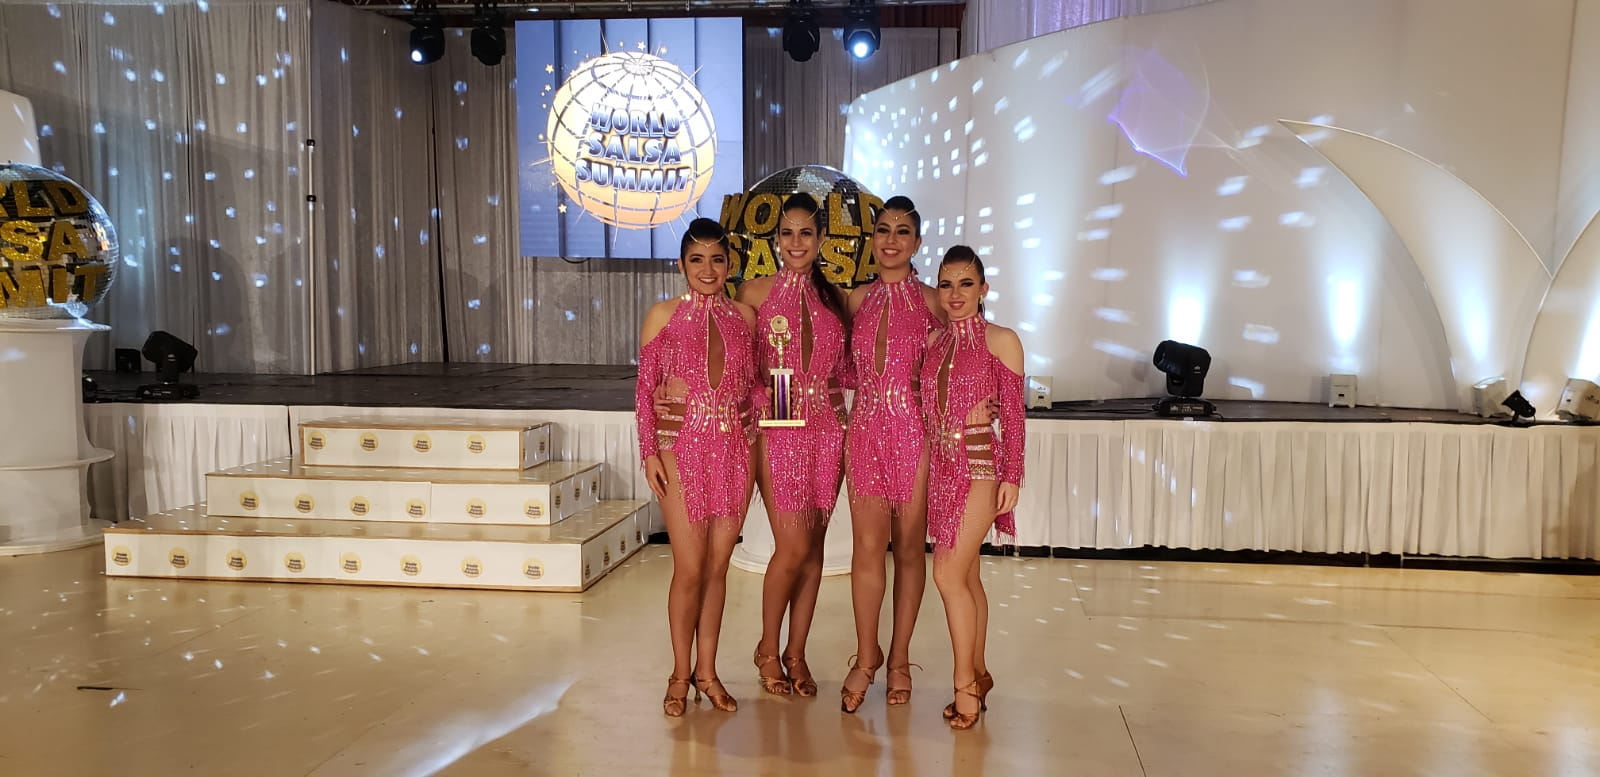 3rd Place Ladies Amateur Team Shines